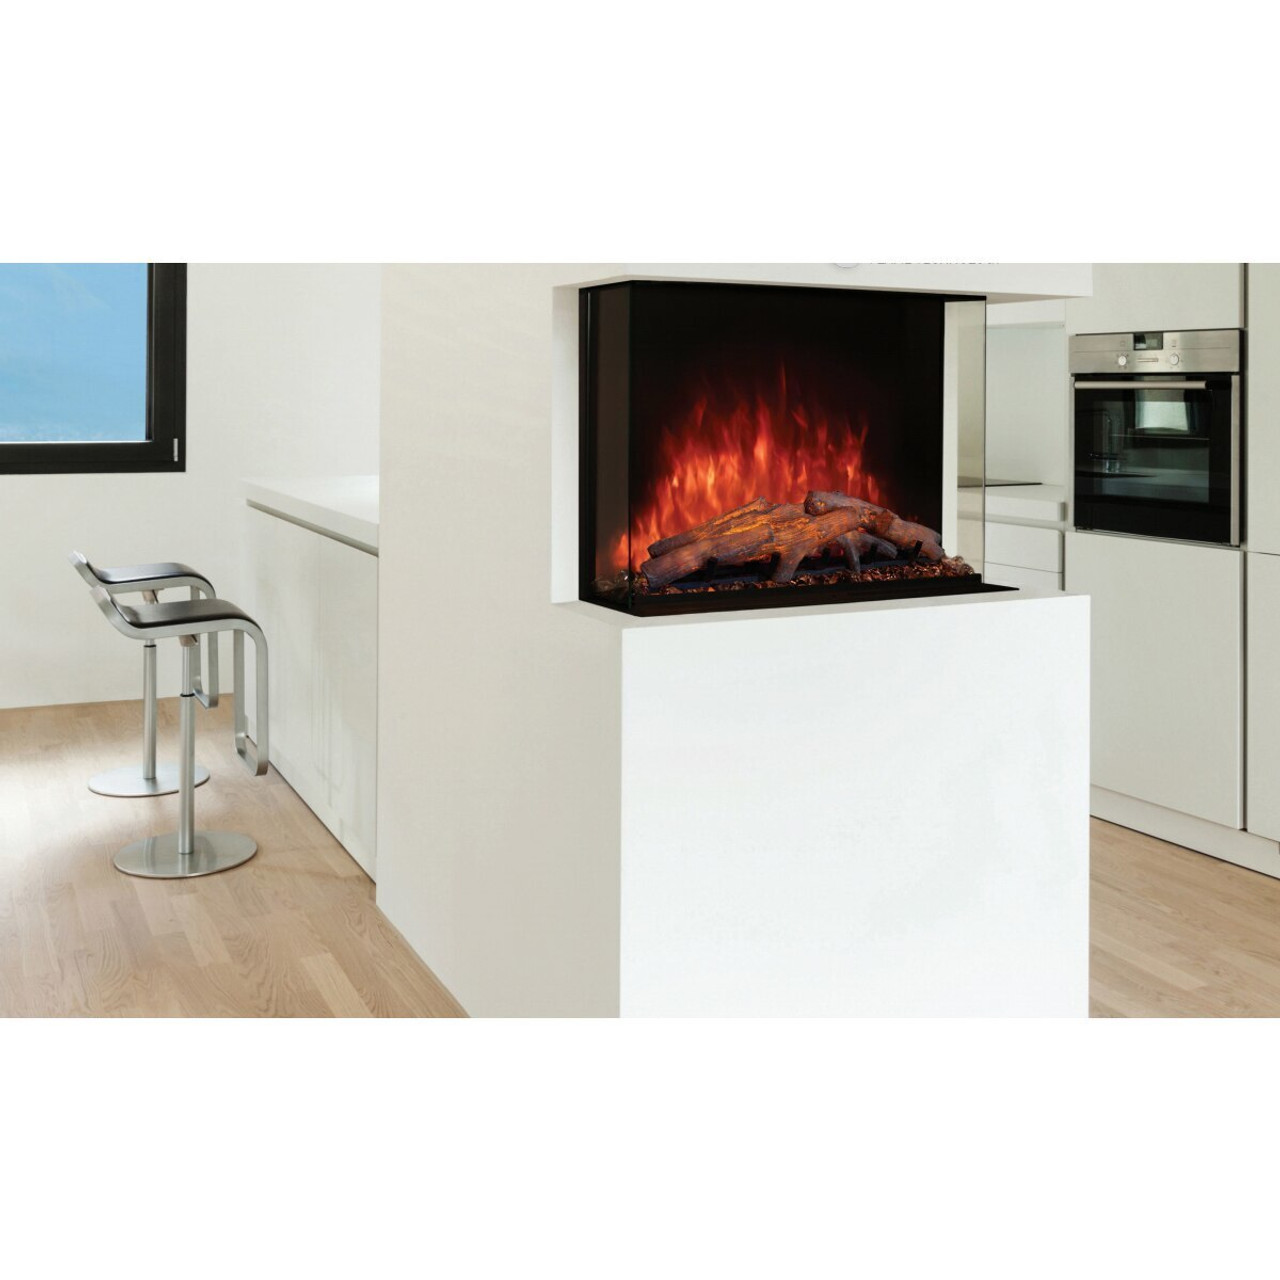 sedona pro multi built in electric fireplace 42 modern flames